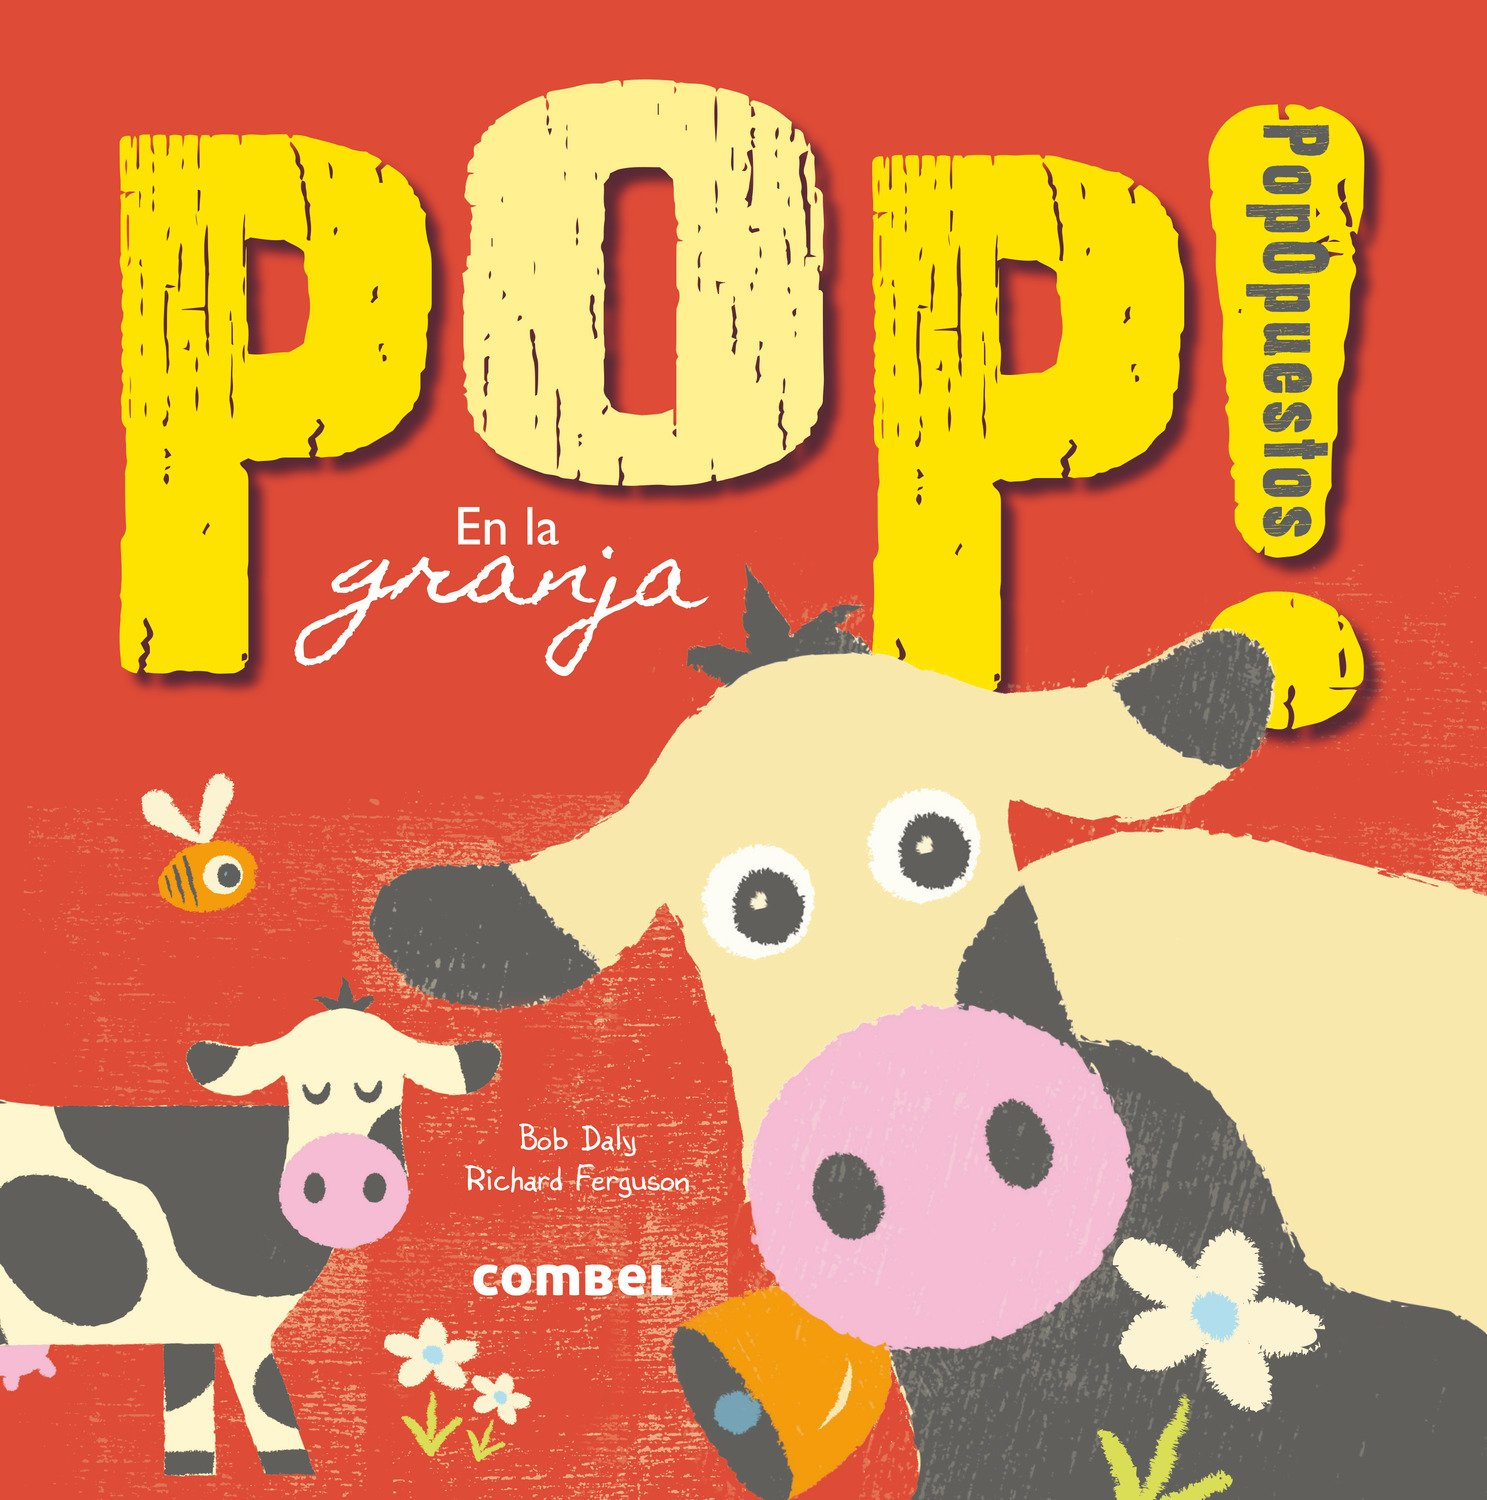 Pop! PopOpuestos en la granja (Spanish Edition)